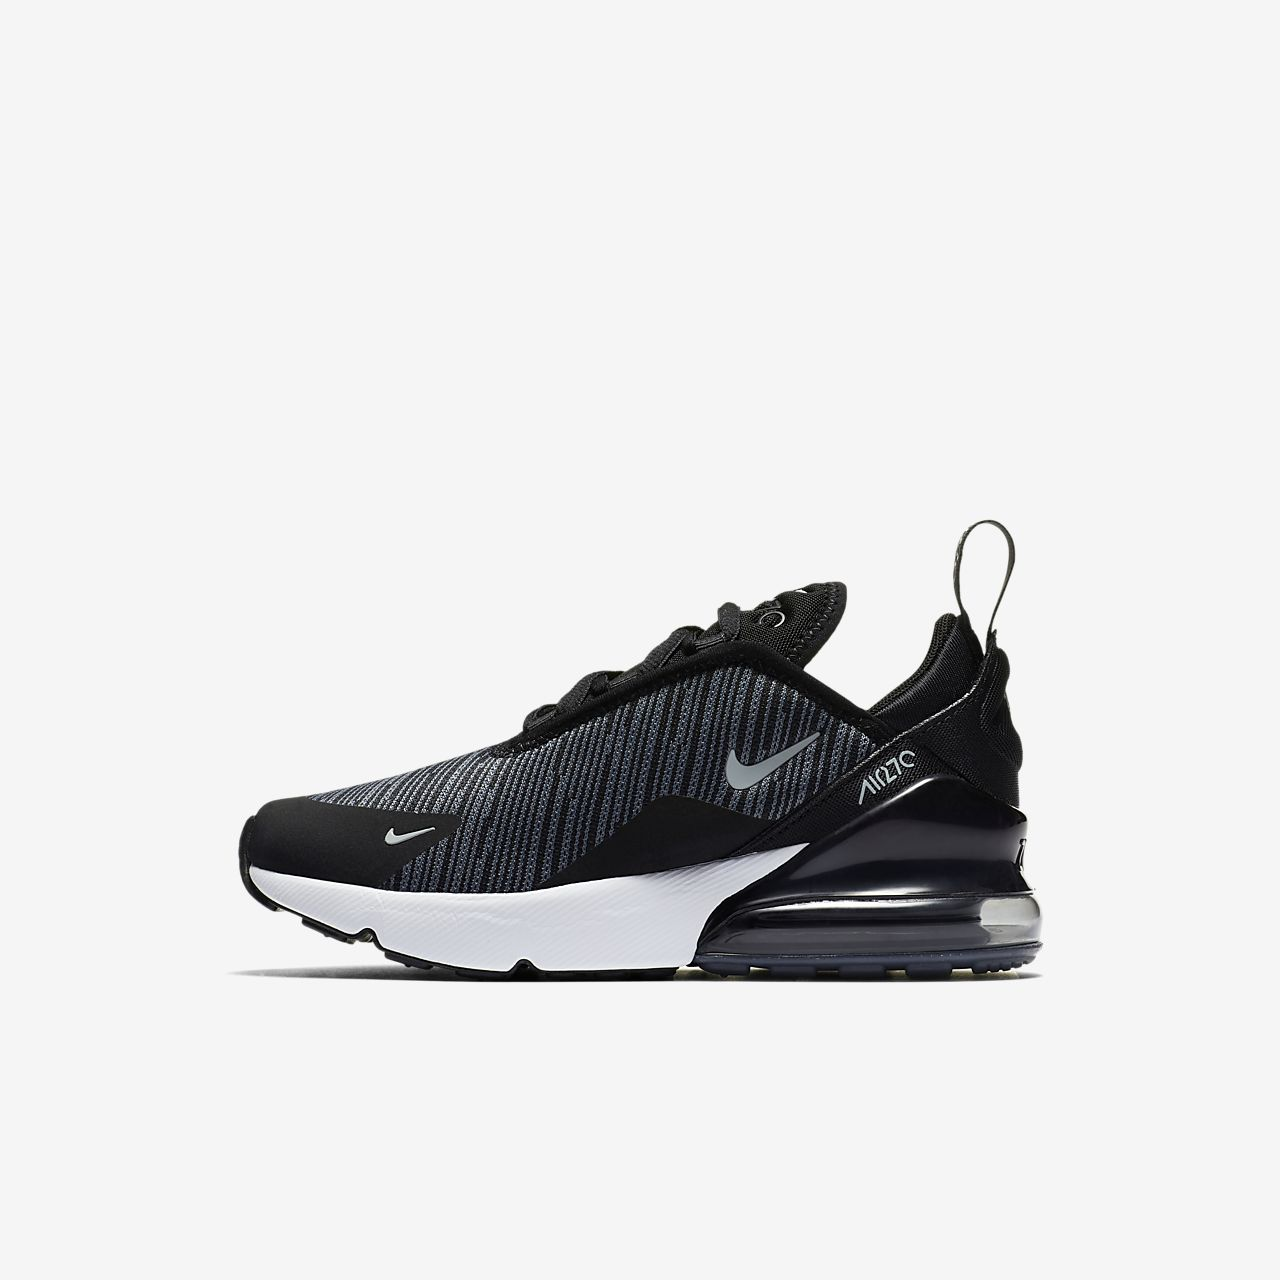 nike air max 270 schuh f r j ngere kinder ch. Black Bedroom Furniture Sets. Home Design Ideas